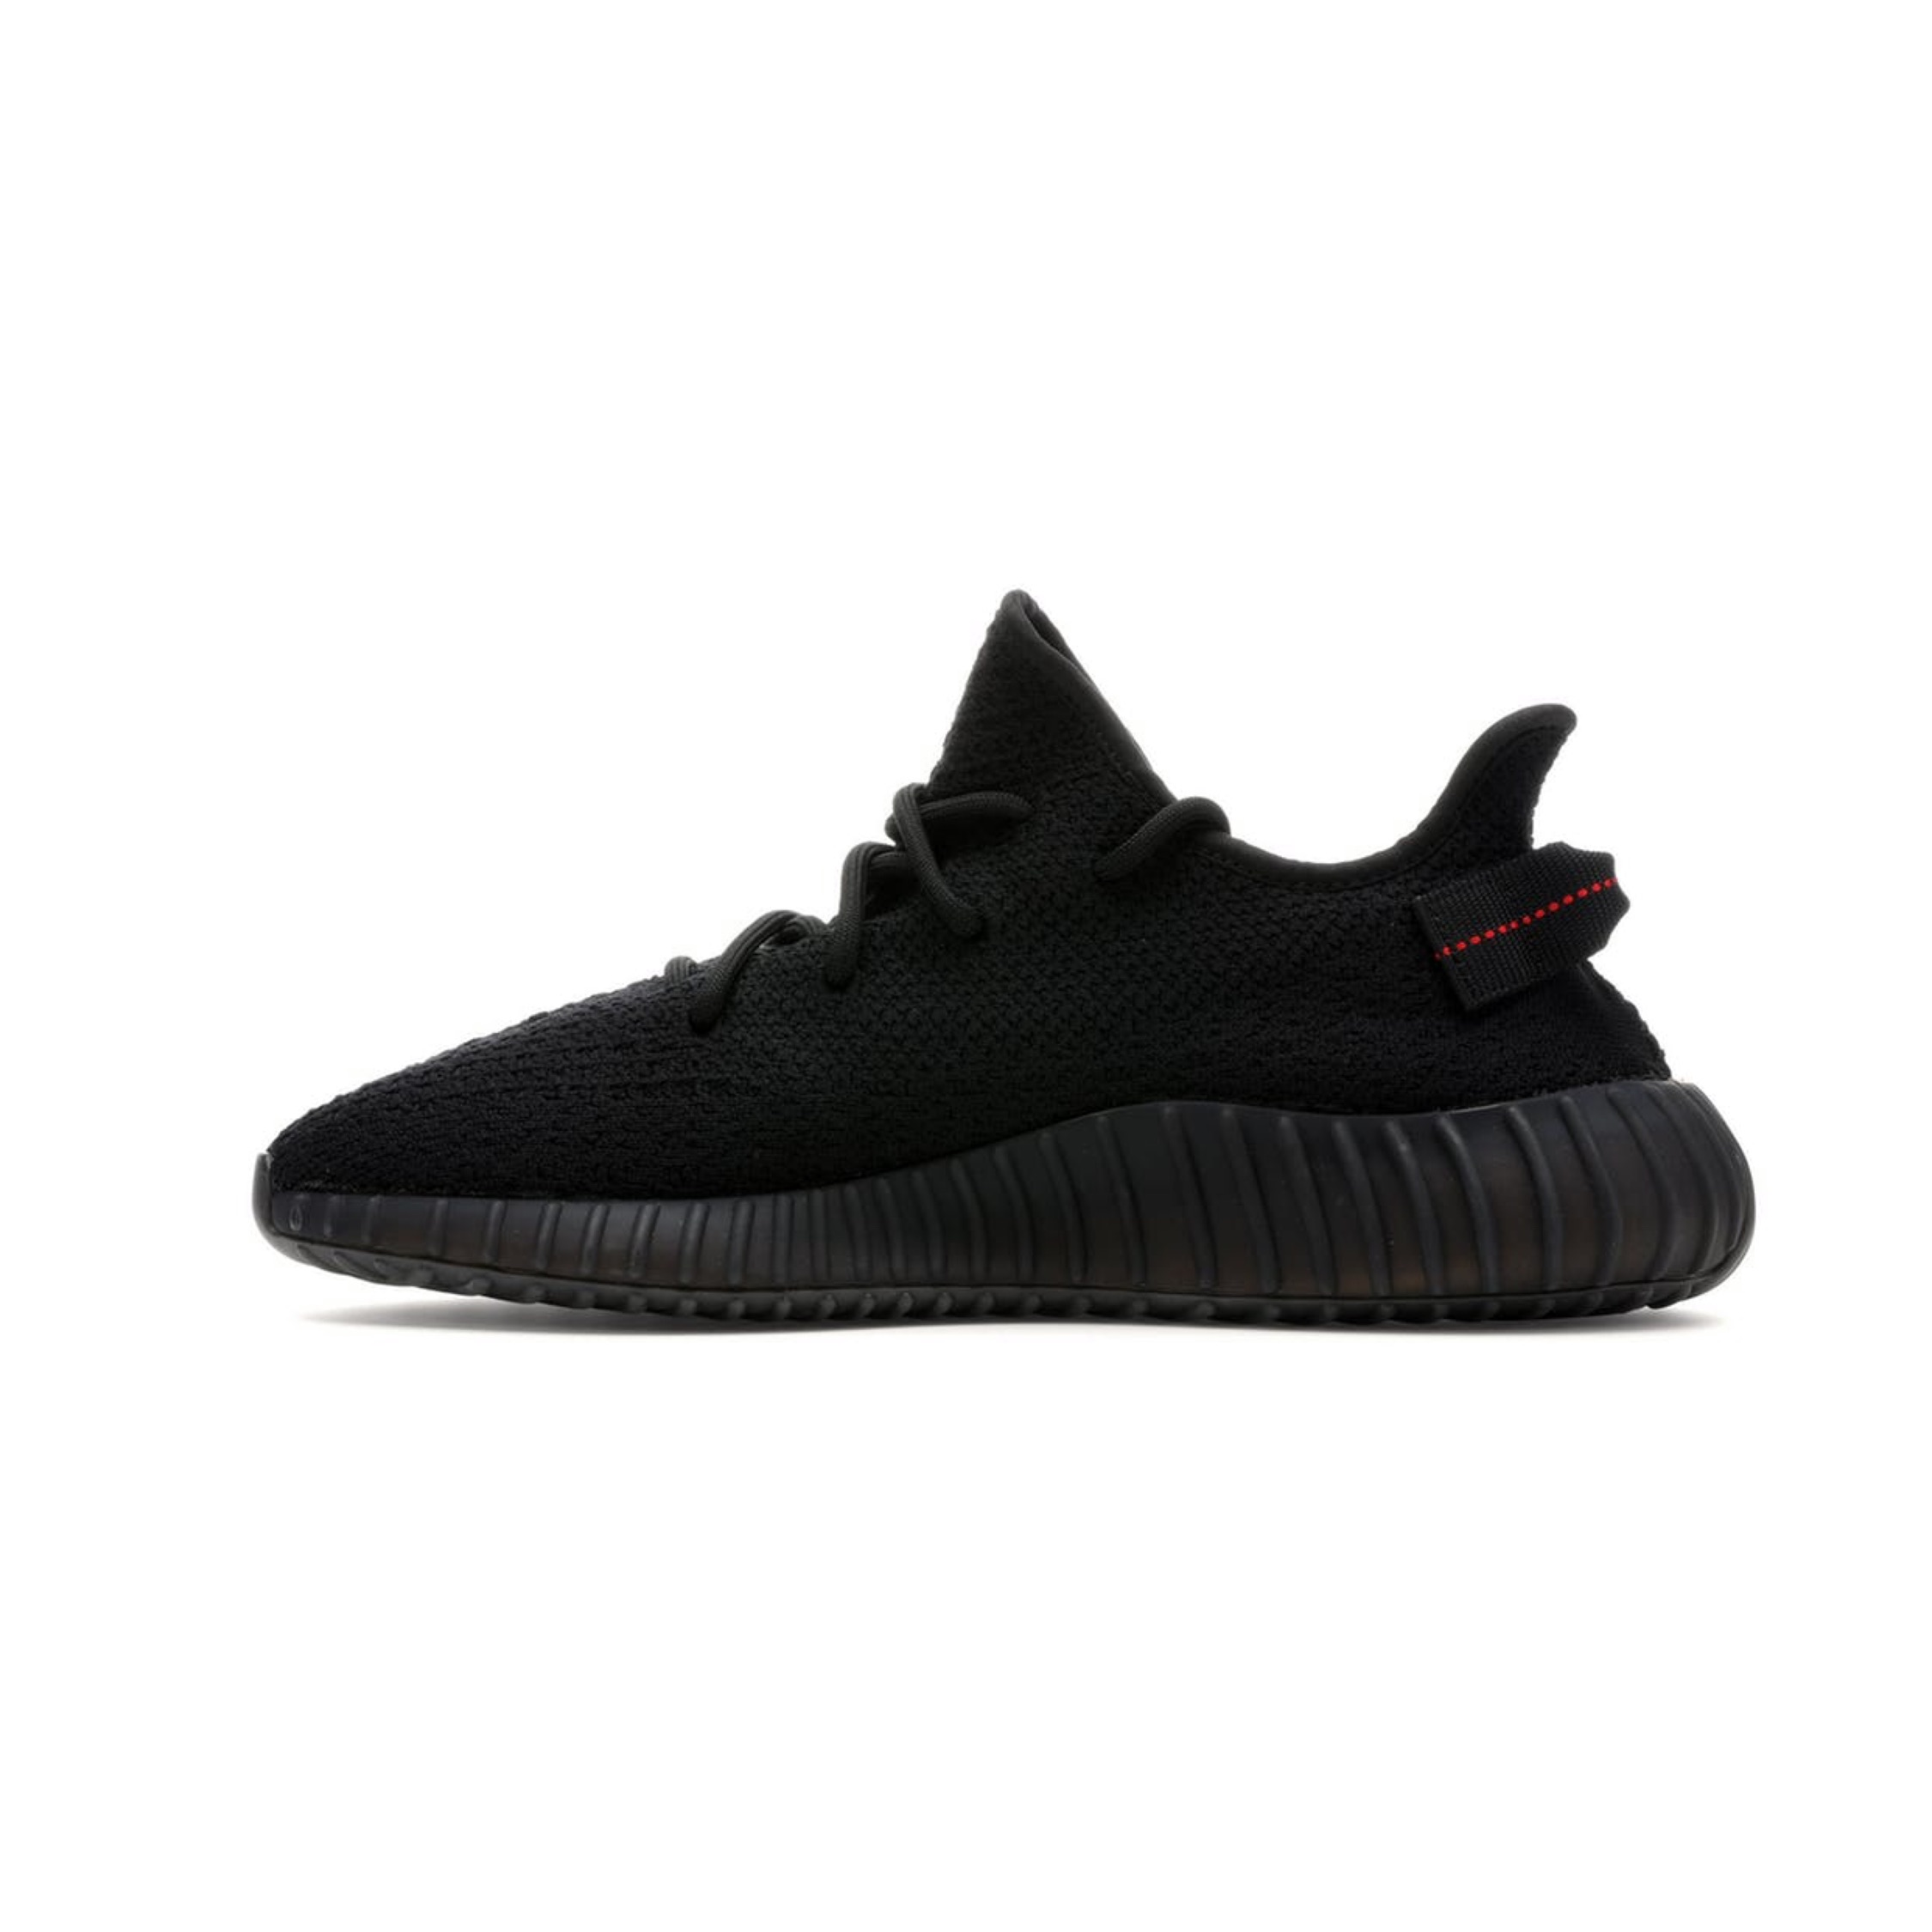 new arrivals 7f1c0 e33e0 Adidas Yeezy Boost 350 V2 Black Red